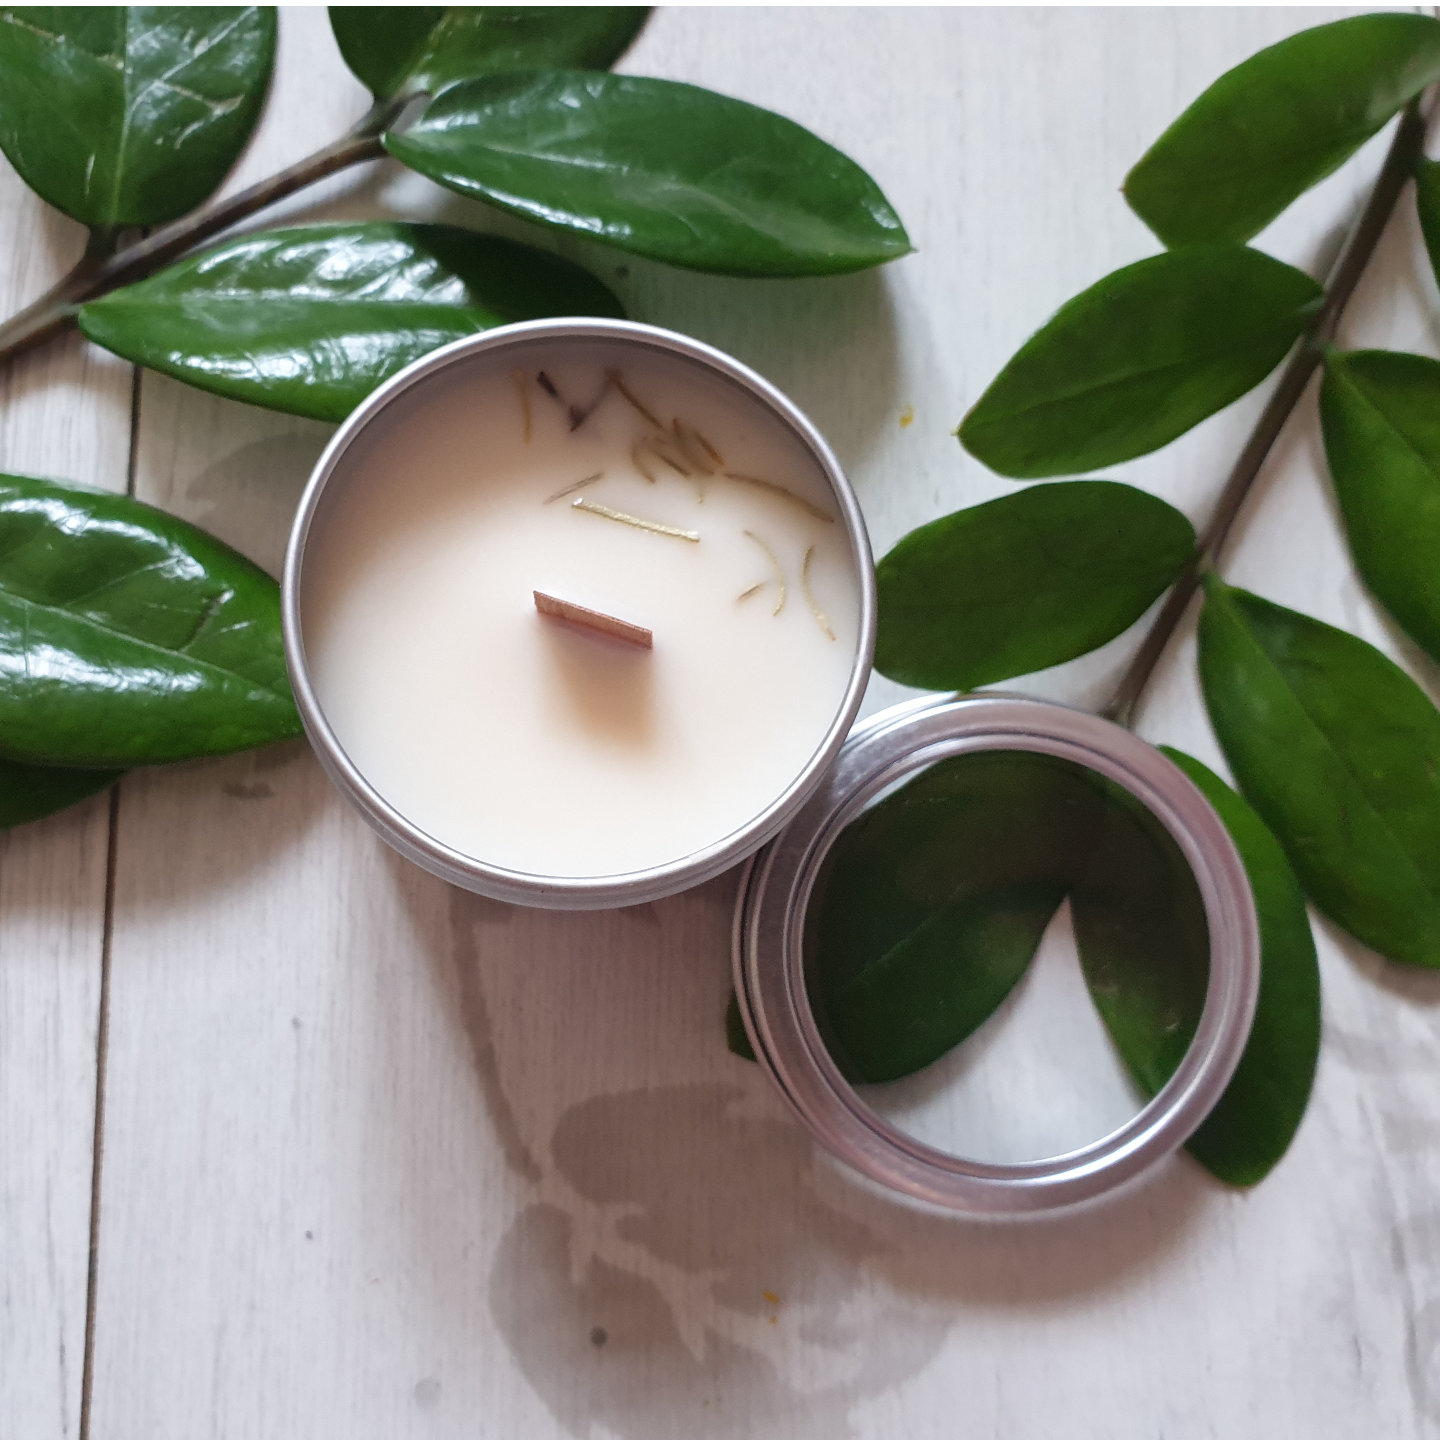 Soywax Candle - Rosemary Mint 4 oz